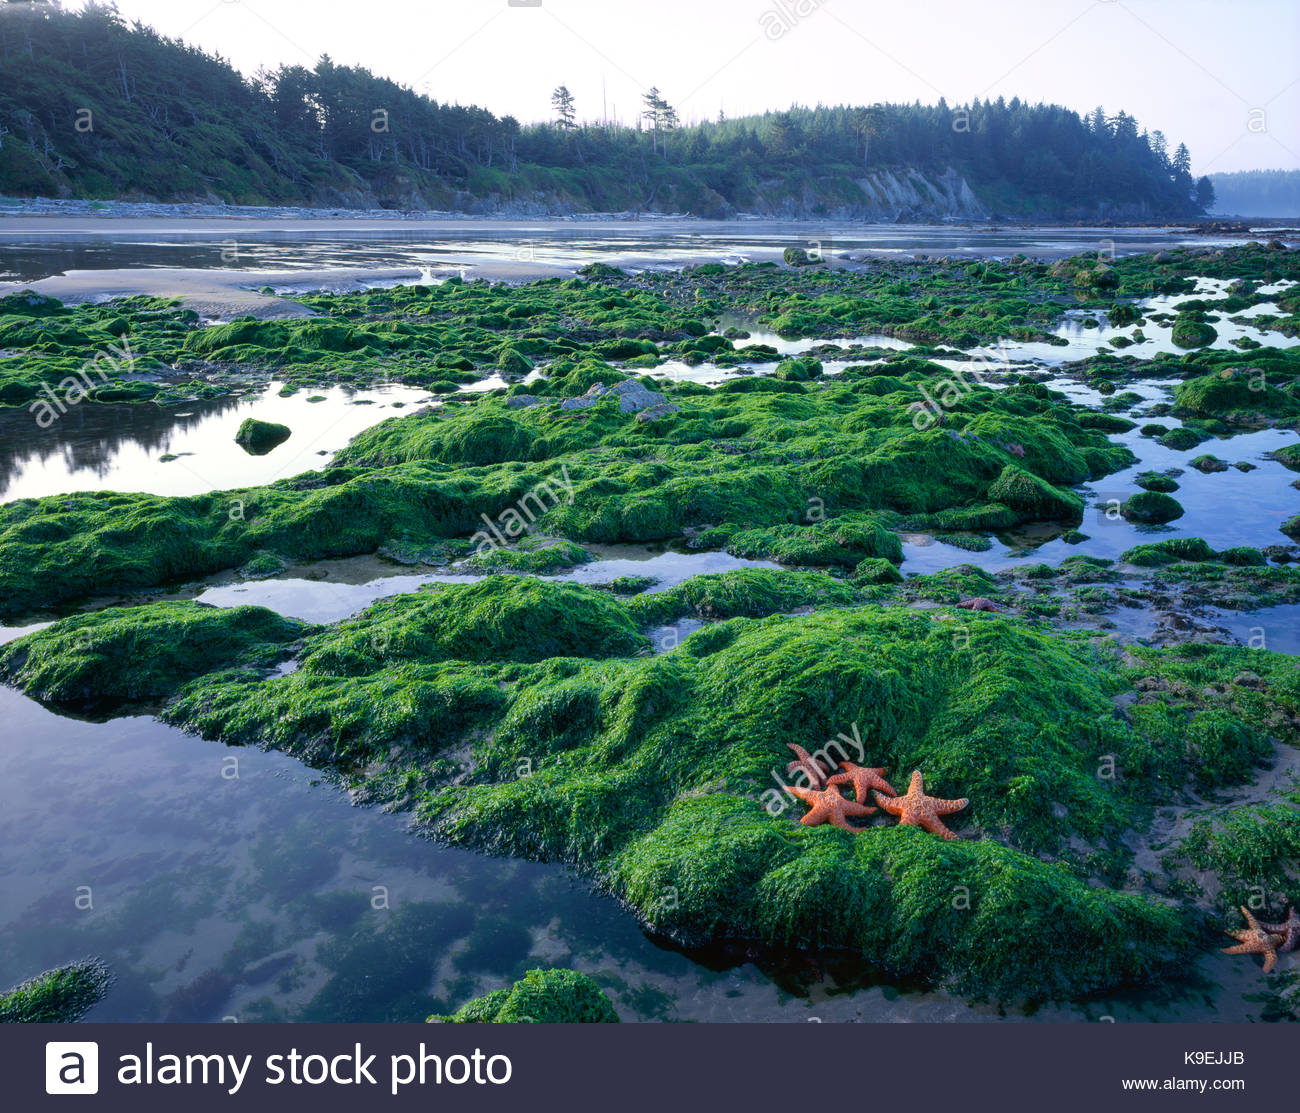 Sea Stars and Tide Pools, Olympic National Park, Washington - Stock Image